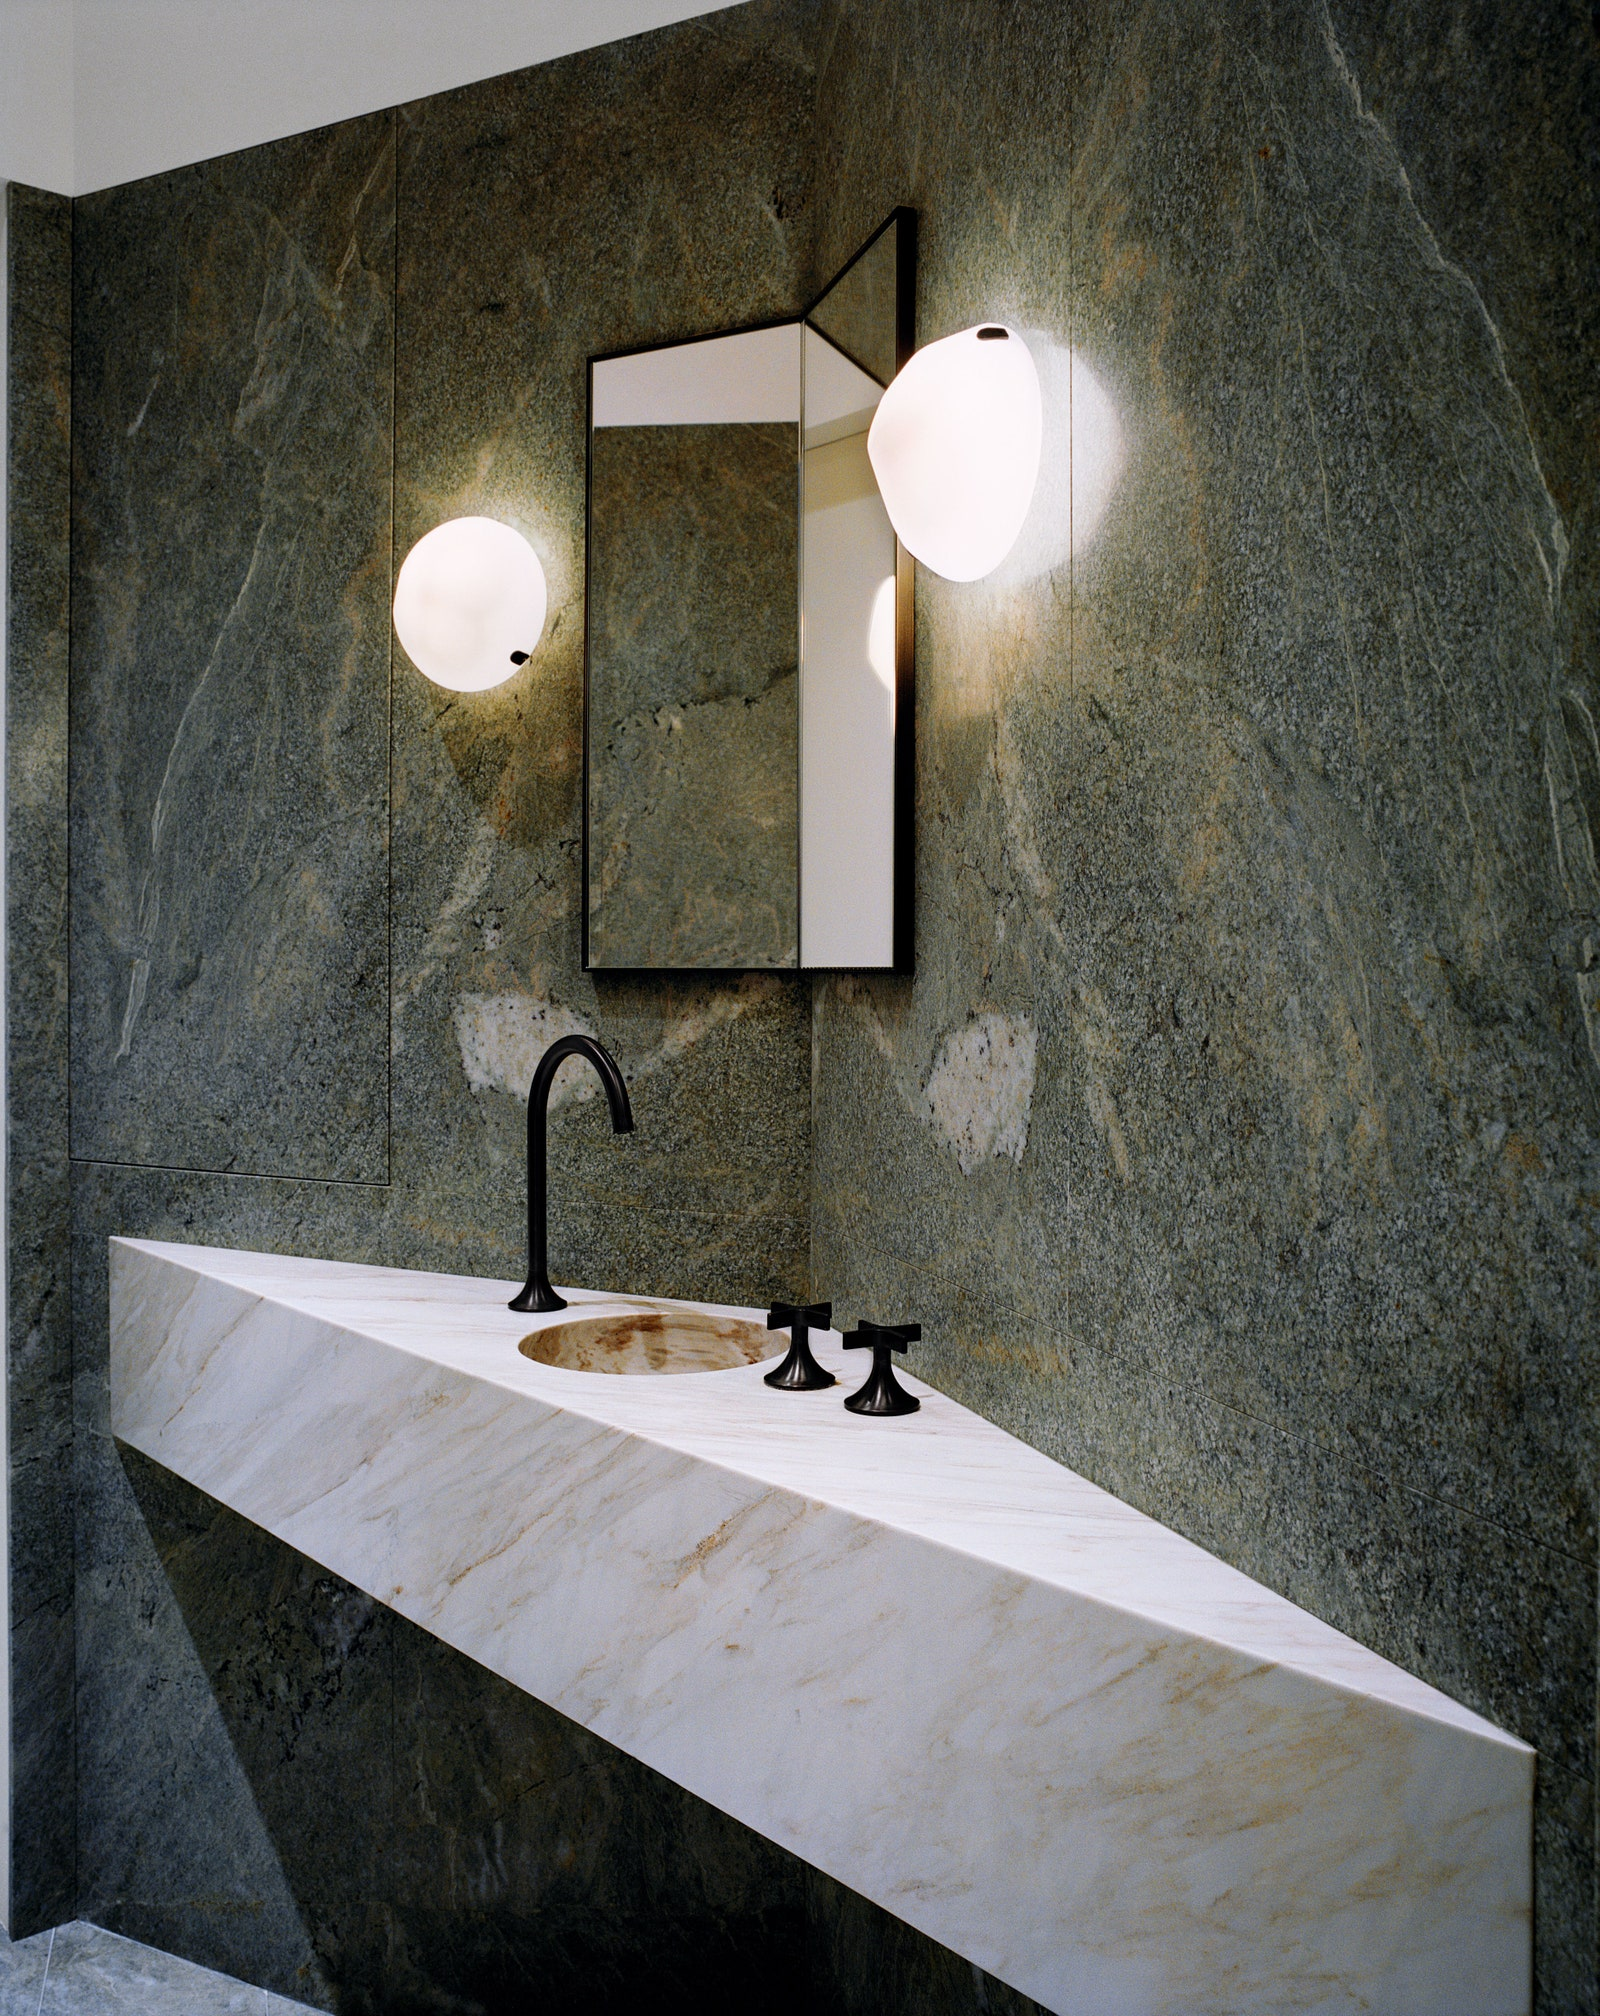 A green Zhivago marbleclad powder room in a Paris home redesigned by Pierre Yovanovitch.